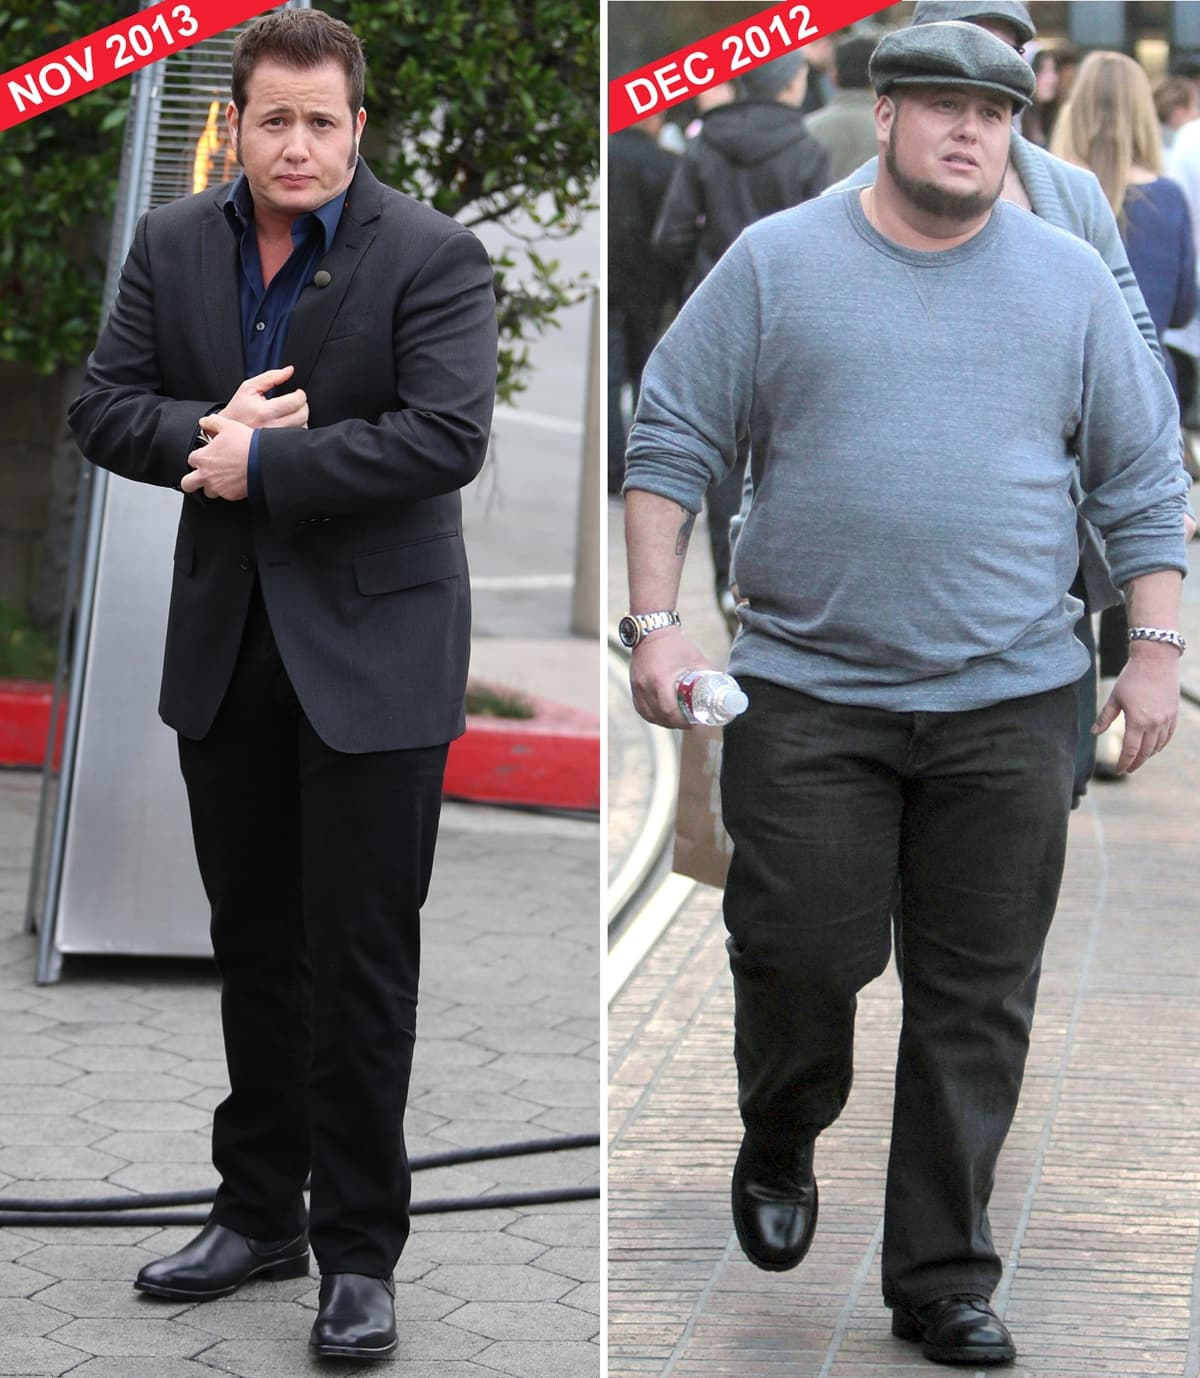 Chaz Bono shows off his 65 lbs. weight loss